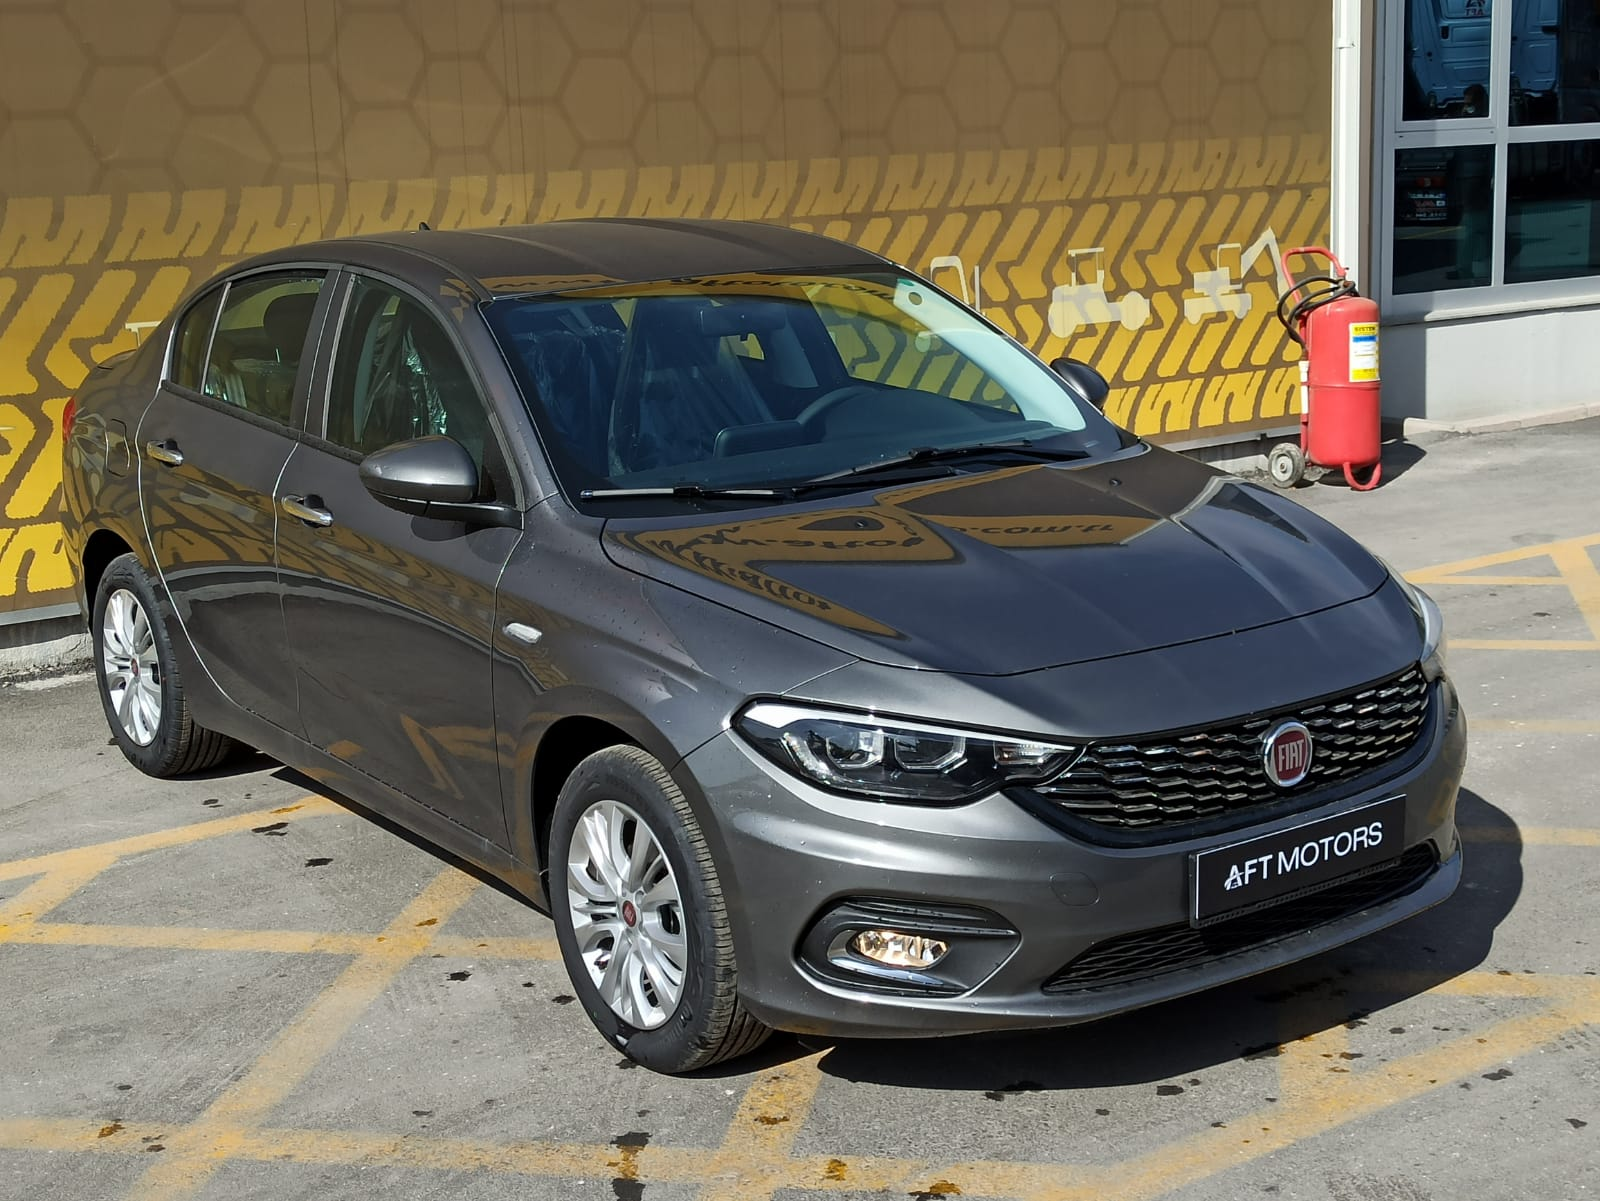 2020 MODEL FIAT EGEA 1.6MJET URBAN PLUS OTOMATİK  - Erçal Trucks